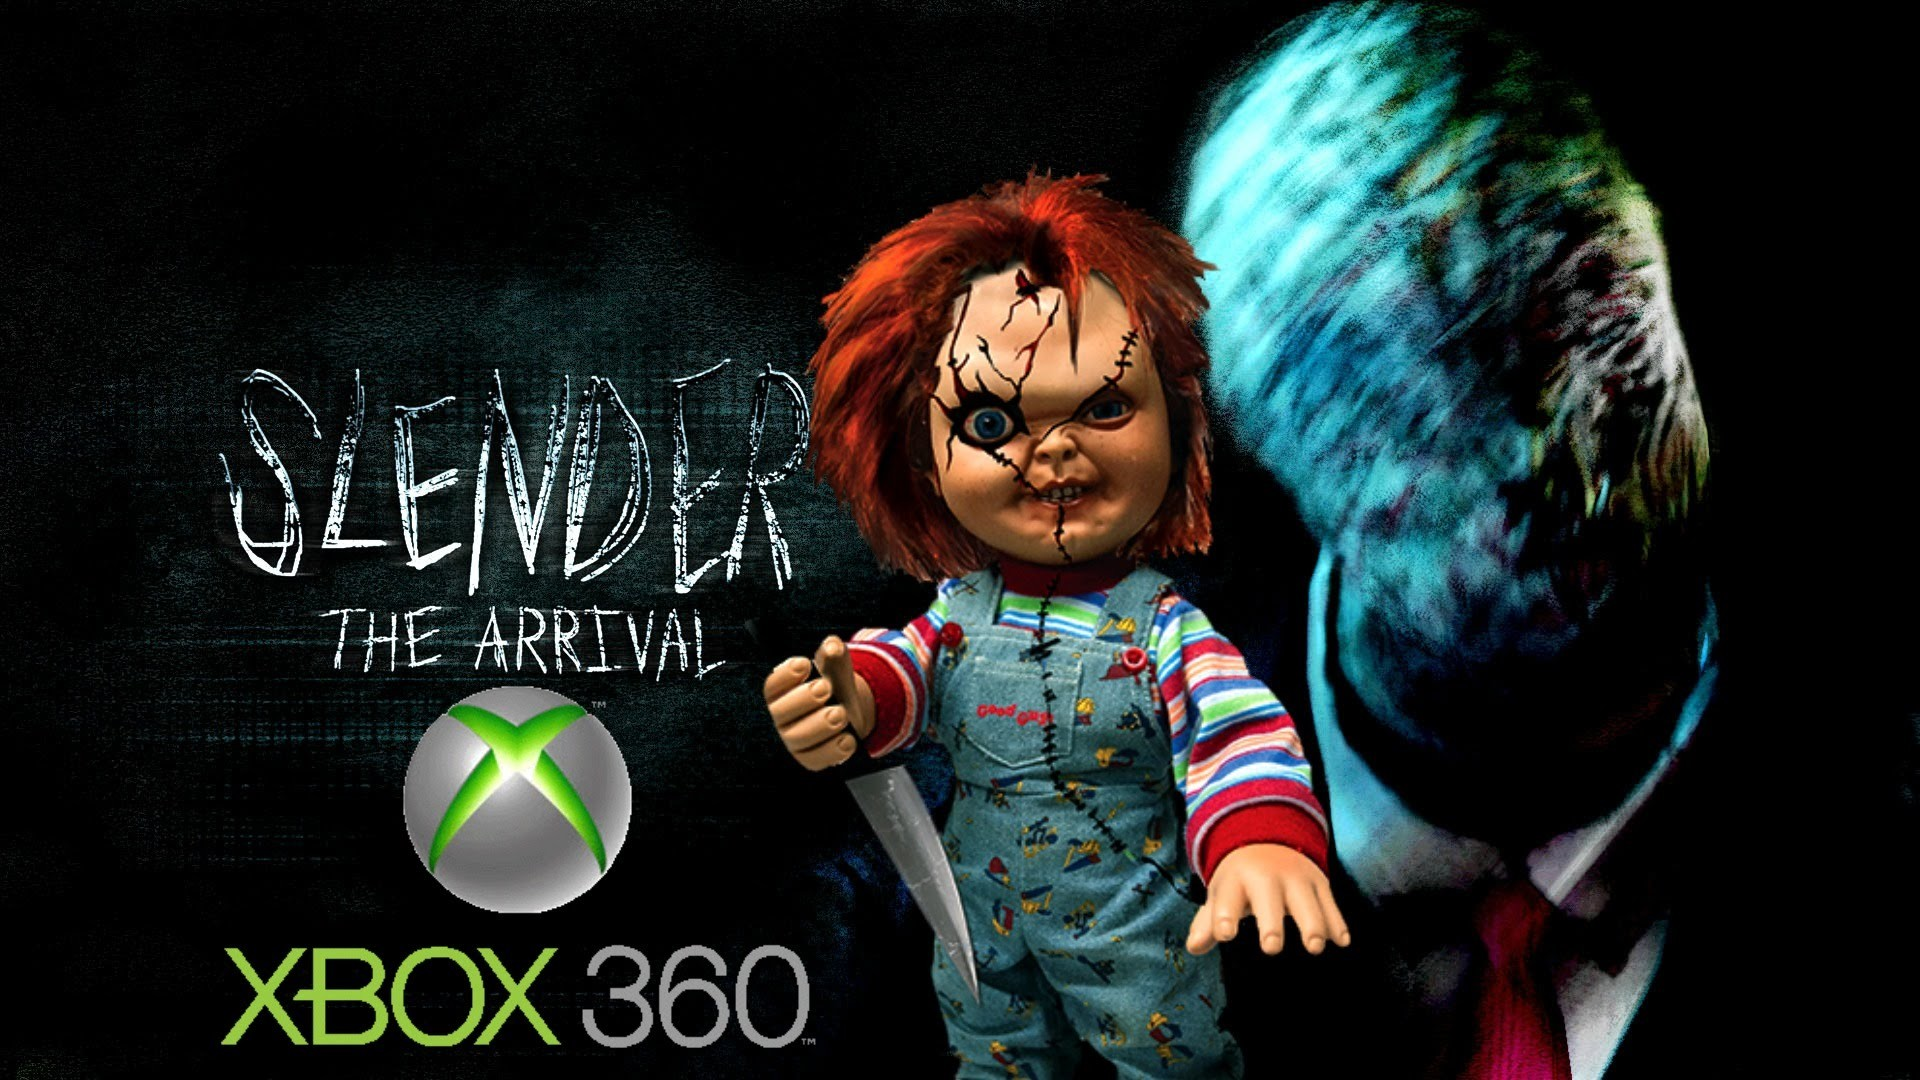 1920x1080 Chucky Speaks: Slender The Arrival Coming to Xbox 360?